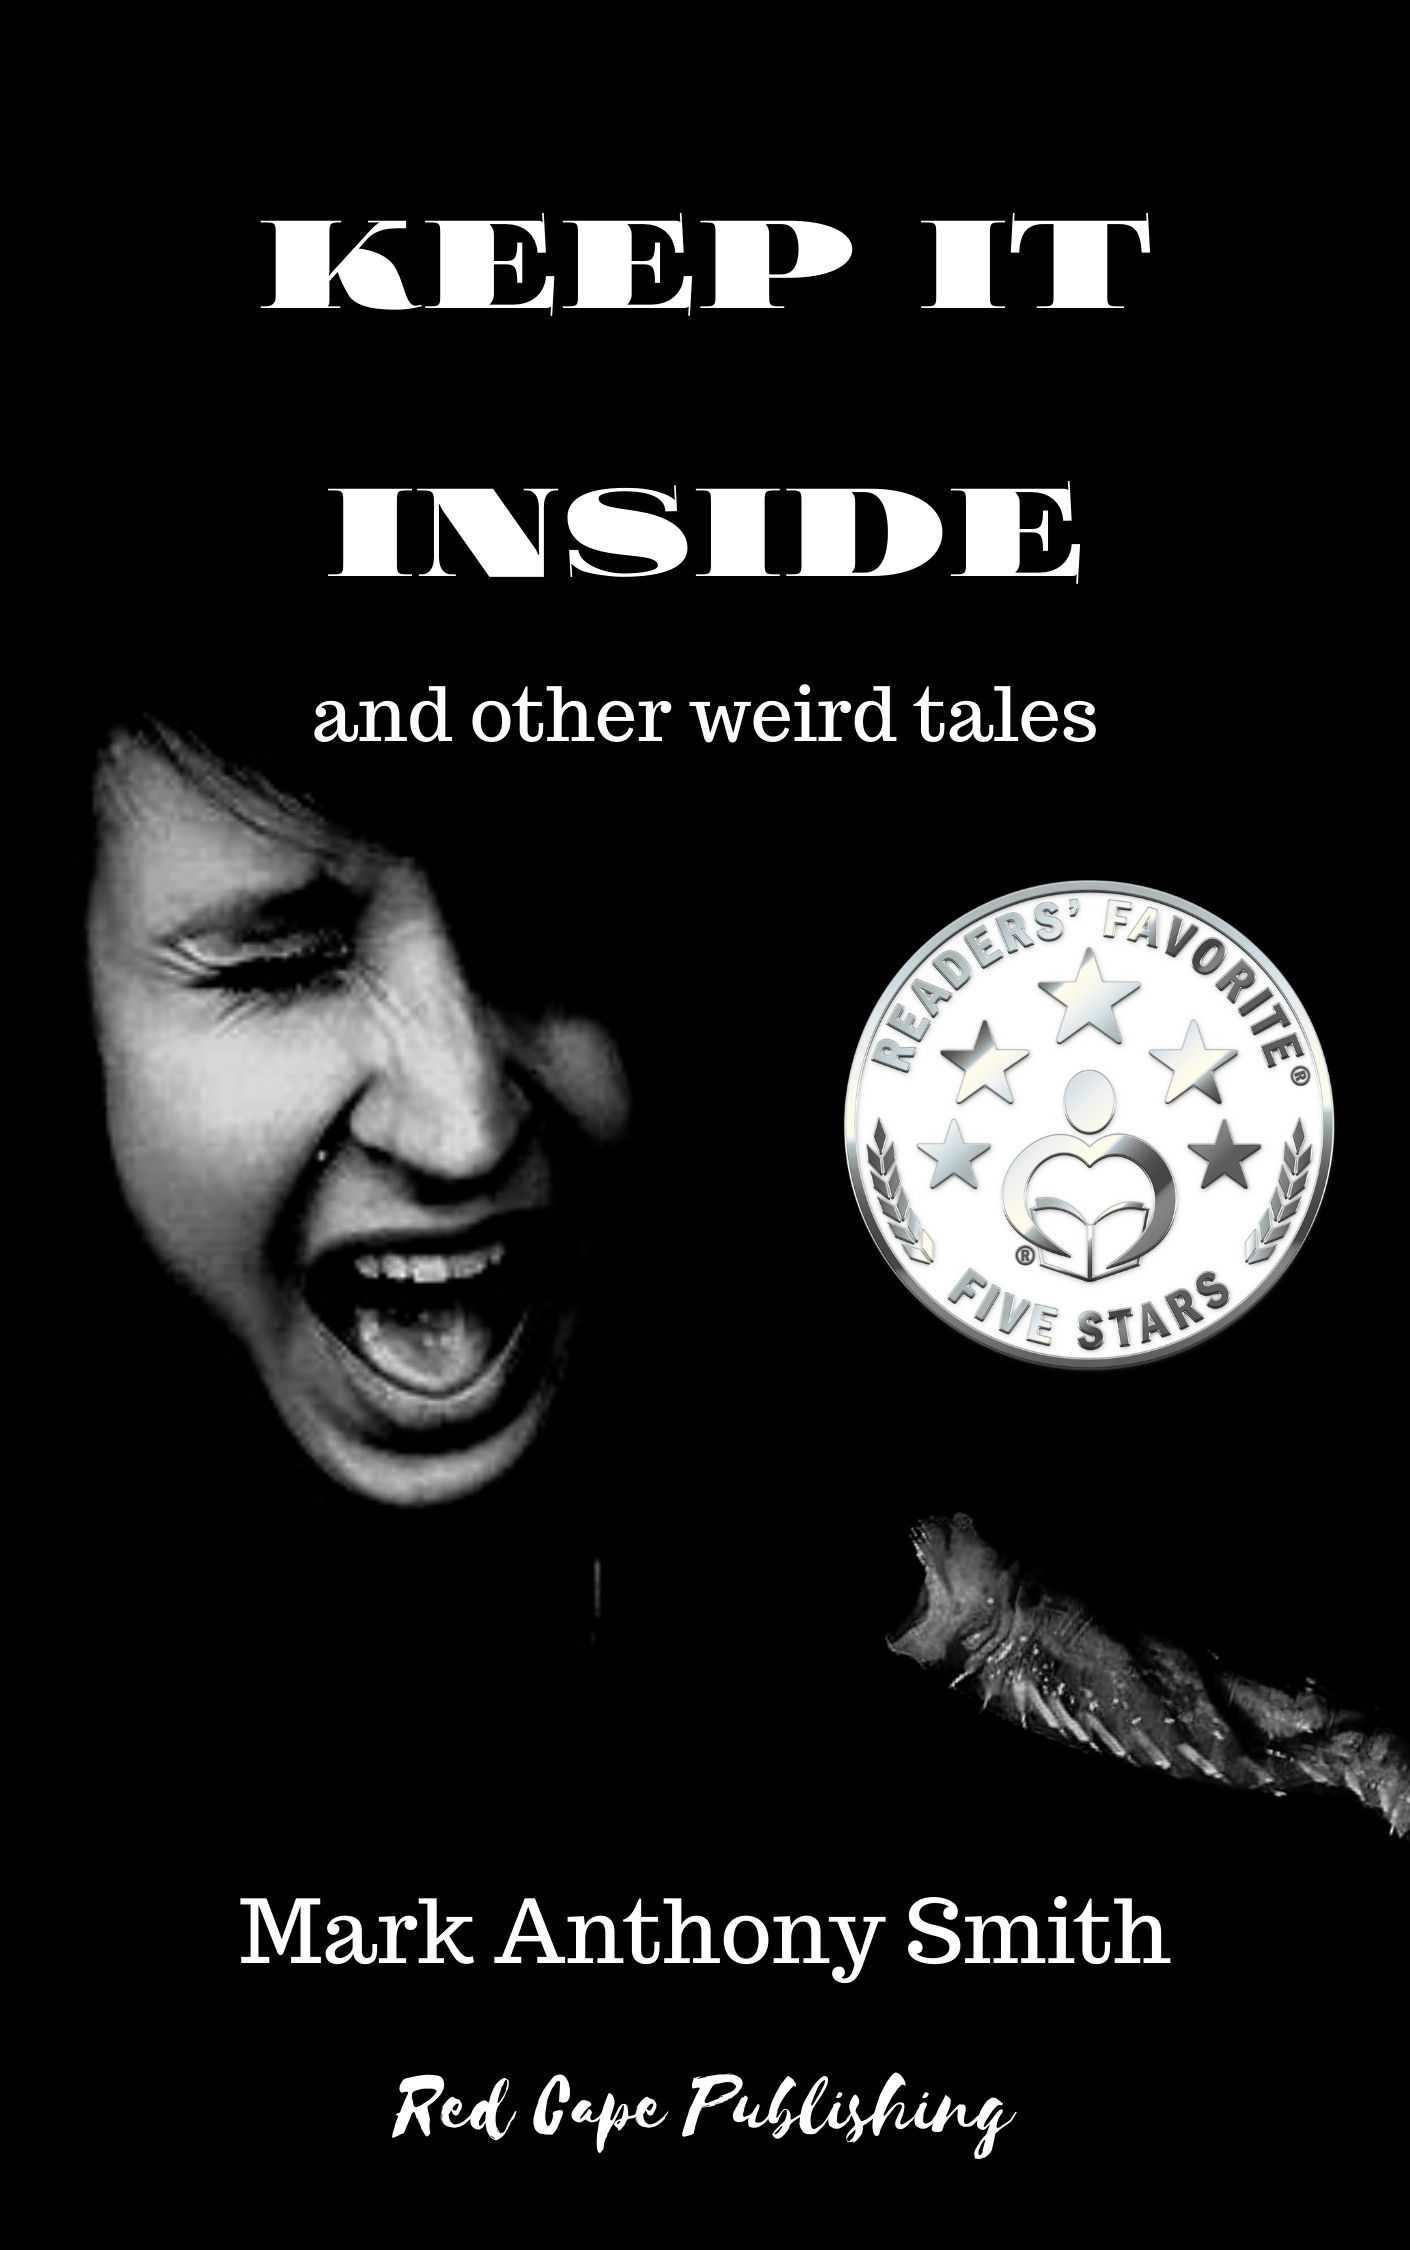 Keep It Inside and Other Weird Tales by Mark Anthony Smith